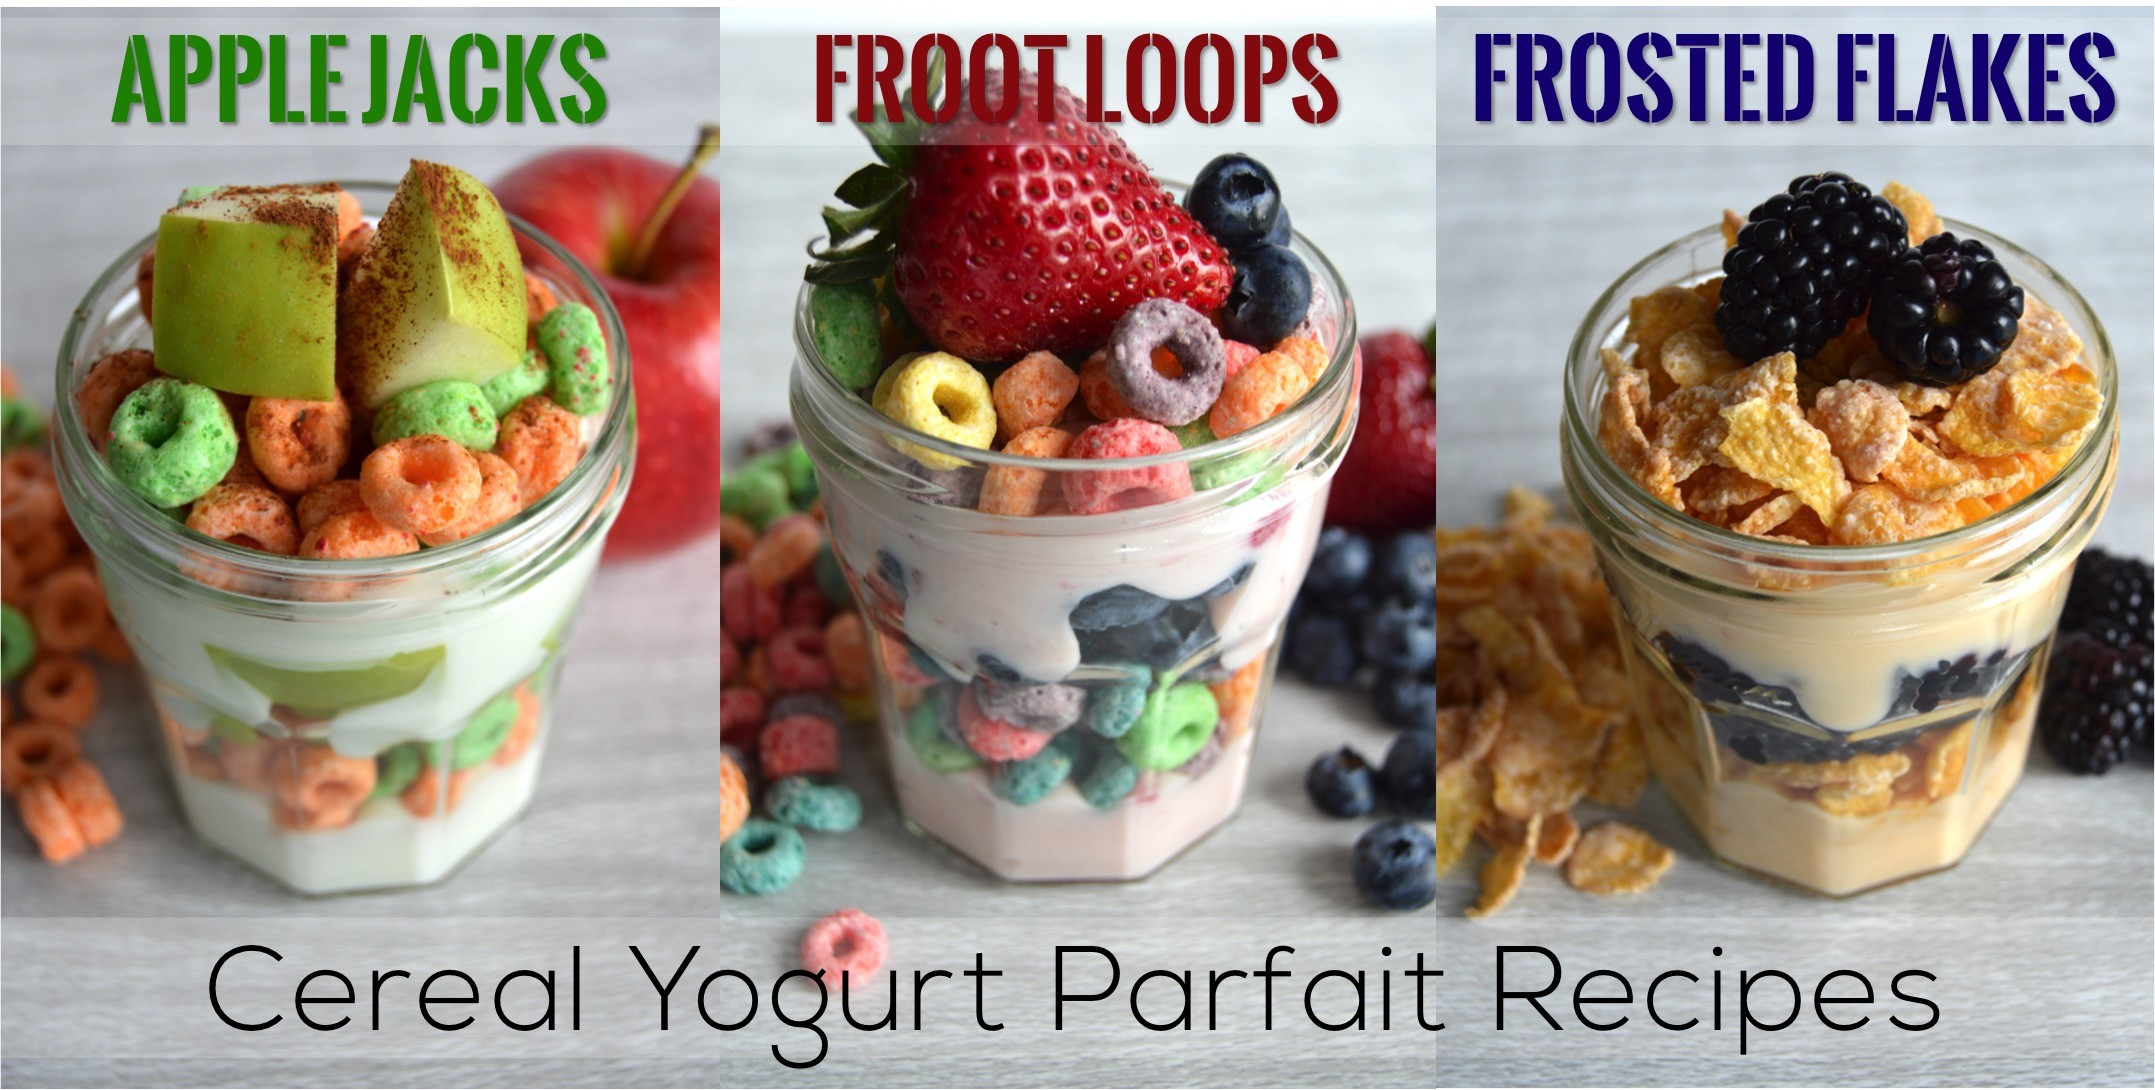 3 Cereal Yogurt Parfait Recipes using Kellogg cereals | Breakfast recipe for a cereal yogurt parfait with fruit. Ideas for Kellogg cereal parfait: Apple Jacks, Froot Loops, and Frosted Flakes. Fun breakfast idea!